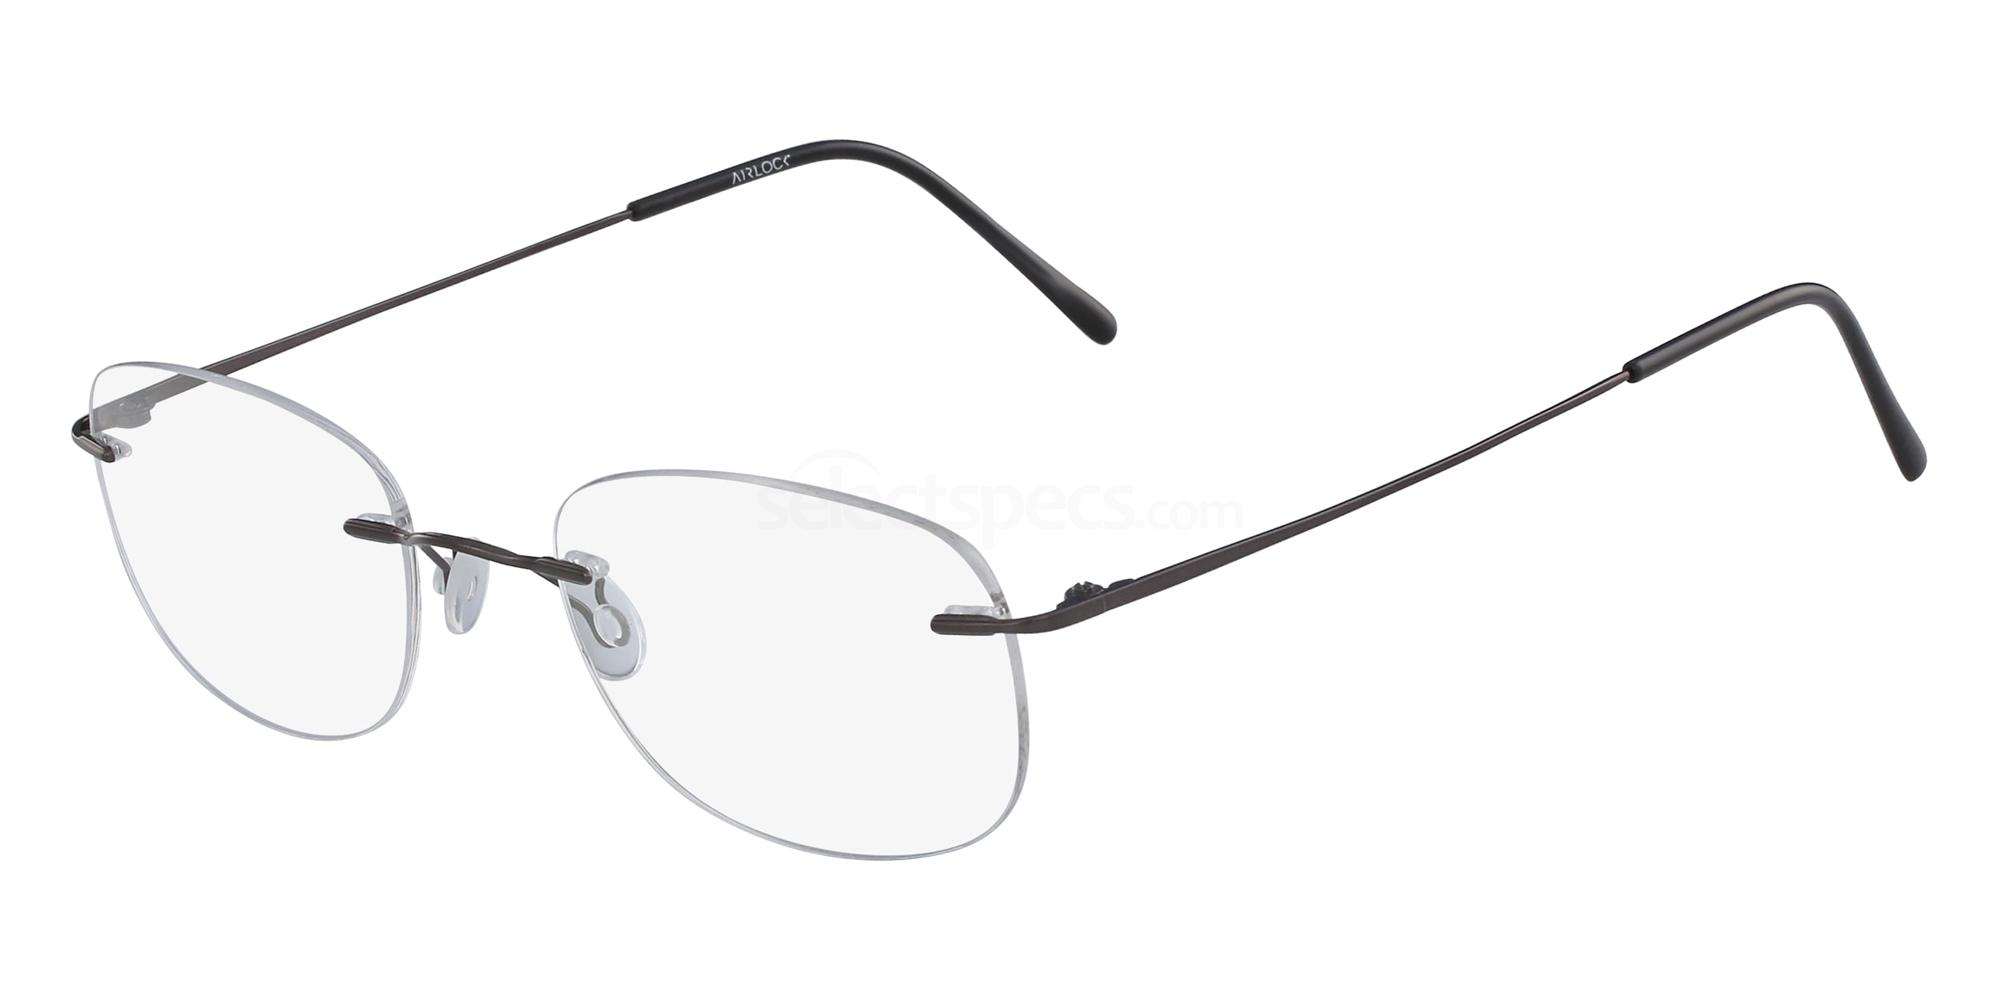 032 SEVEN-SIXTY 201 Glasses, Pure